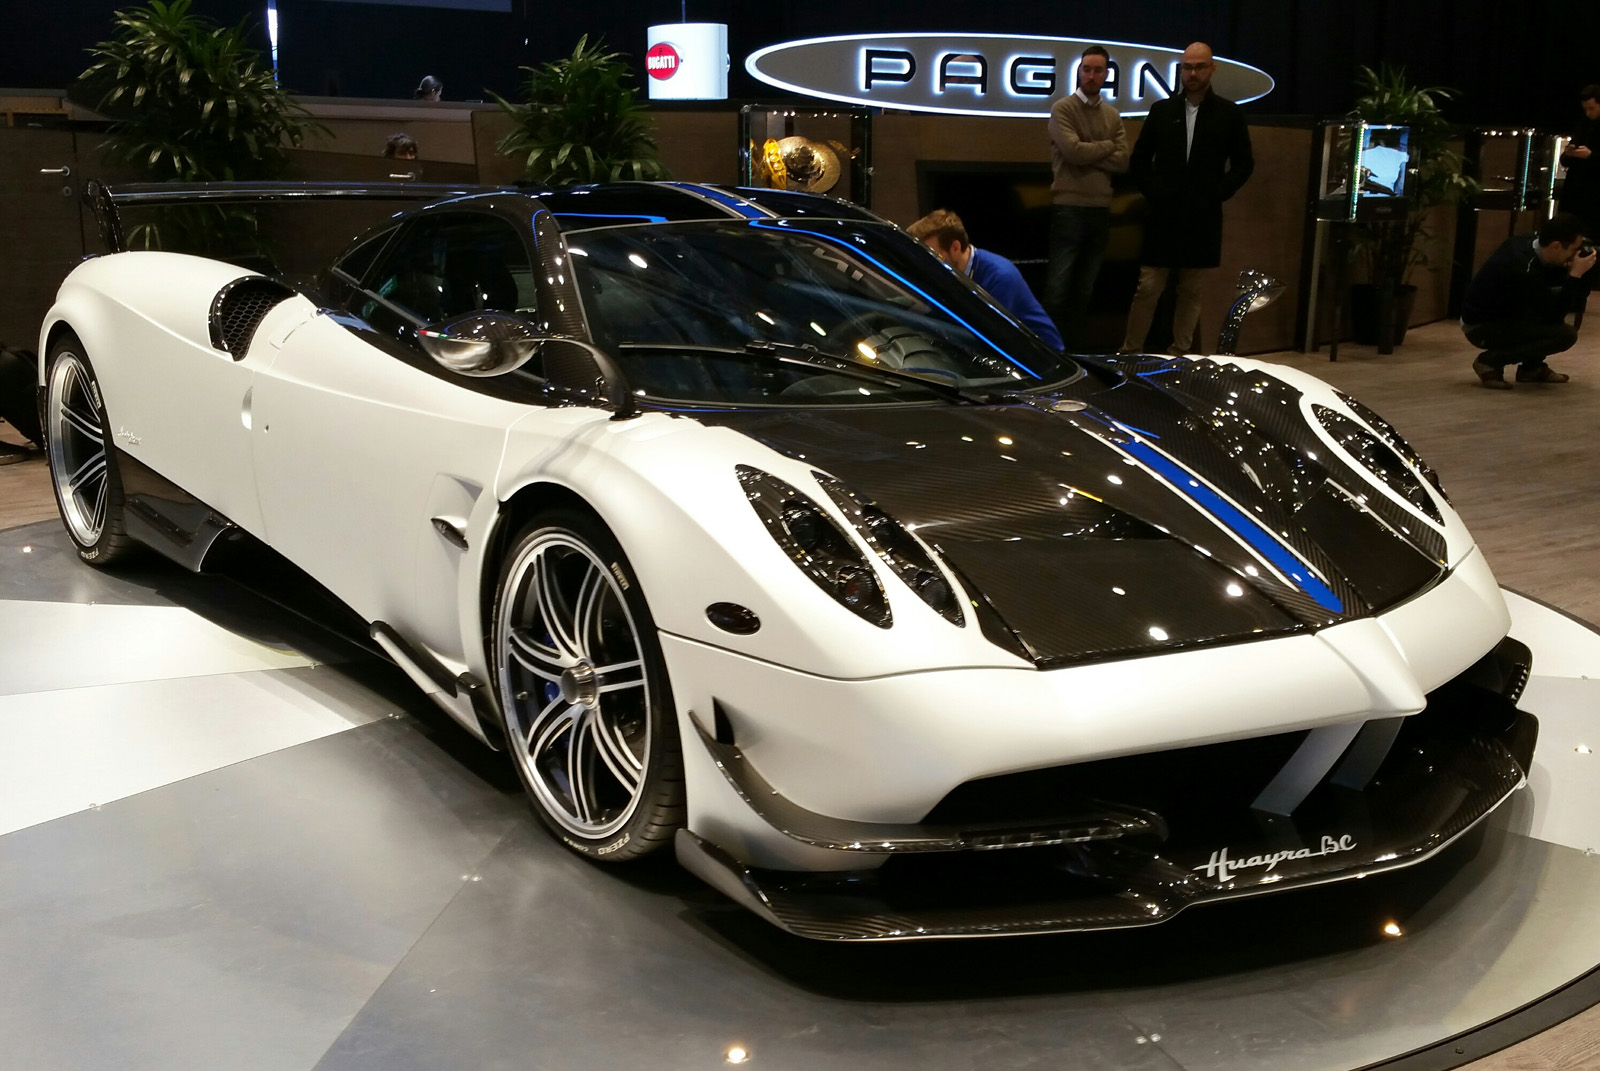 The Pagani Huayra Bc Is Here To Hunt Hypercars Autoguide Com News